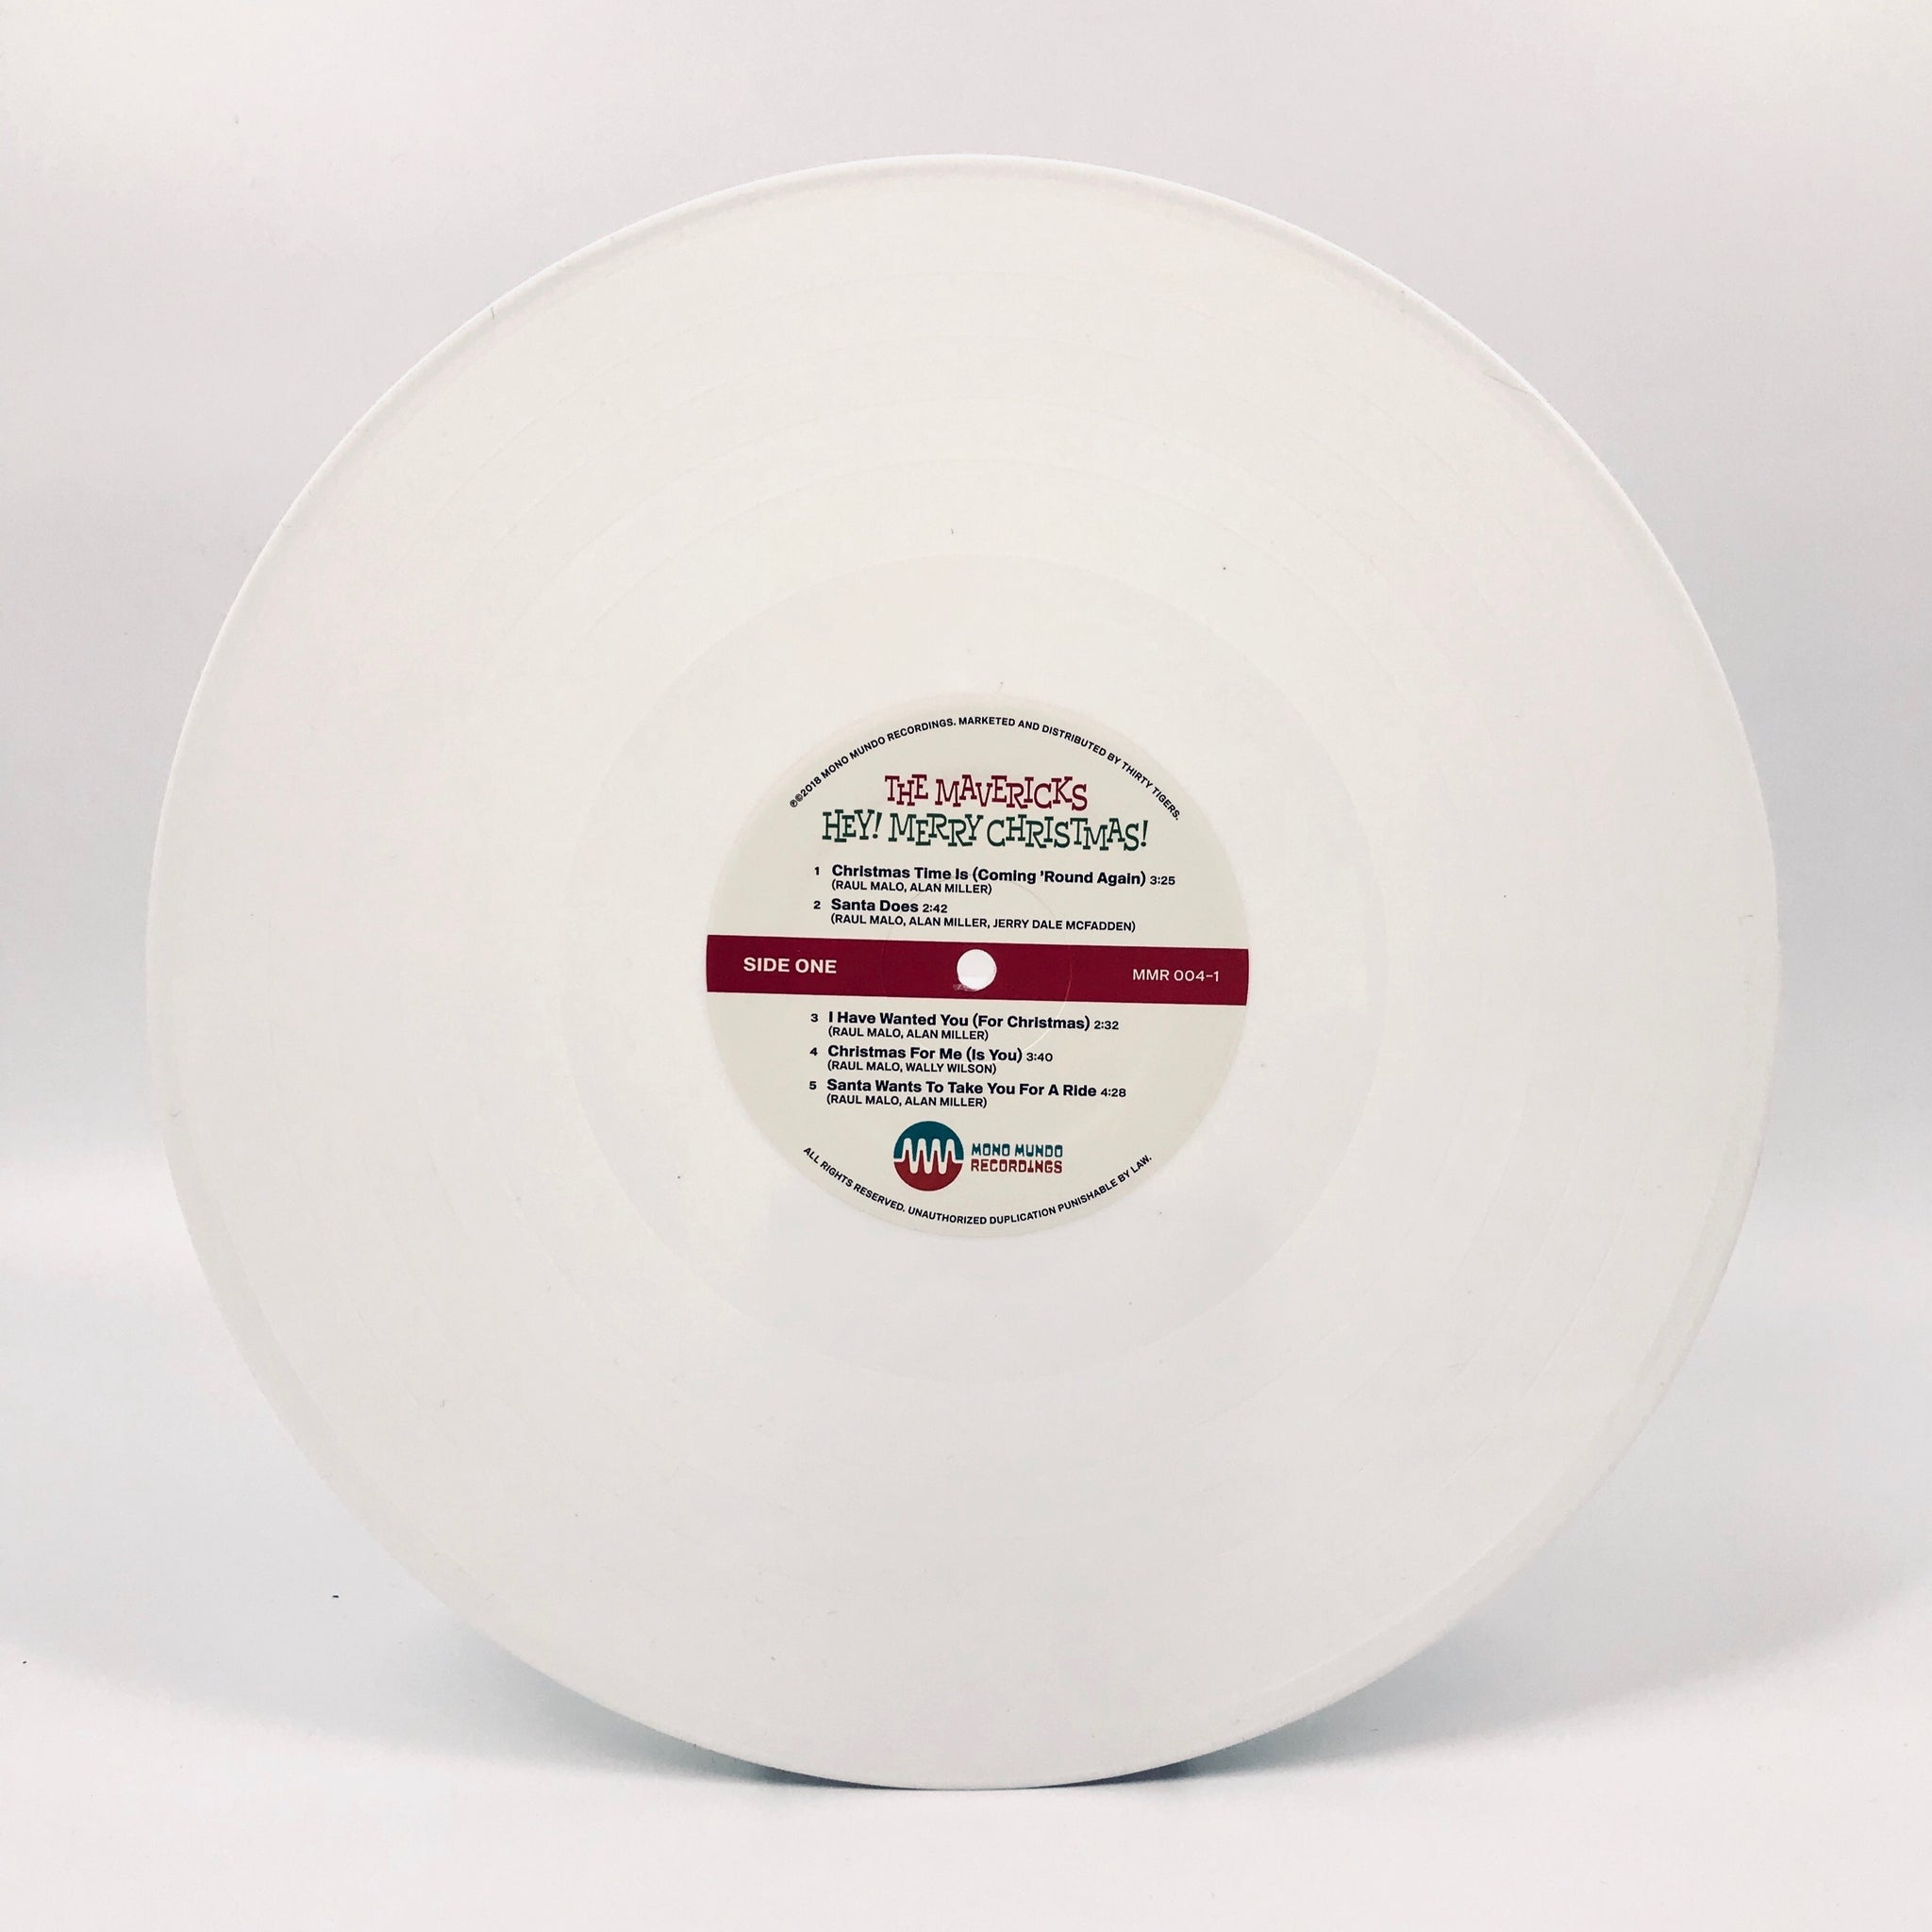 Autographed Hey! Merry Christmas! Limited Edition White Vinyl